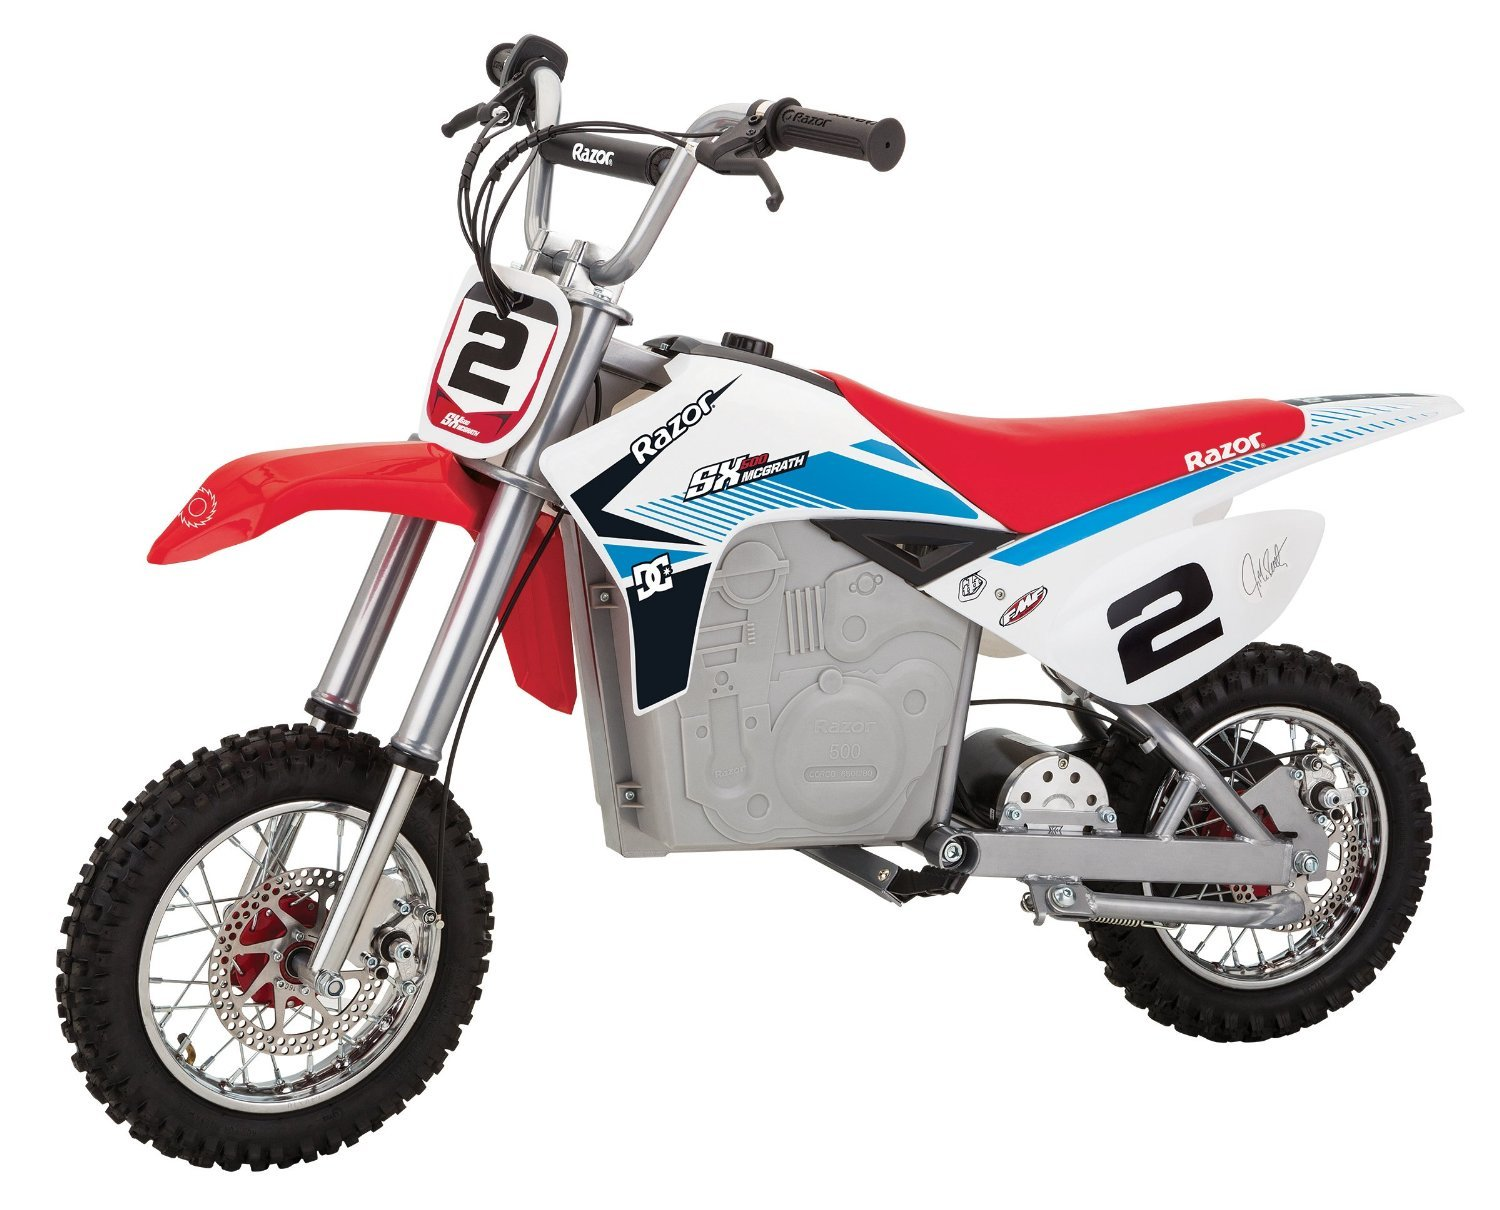 The Best Electric Motorcycles For Kids In 2018 Reviews